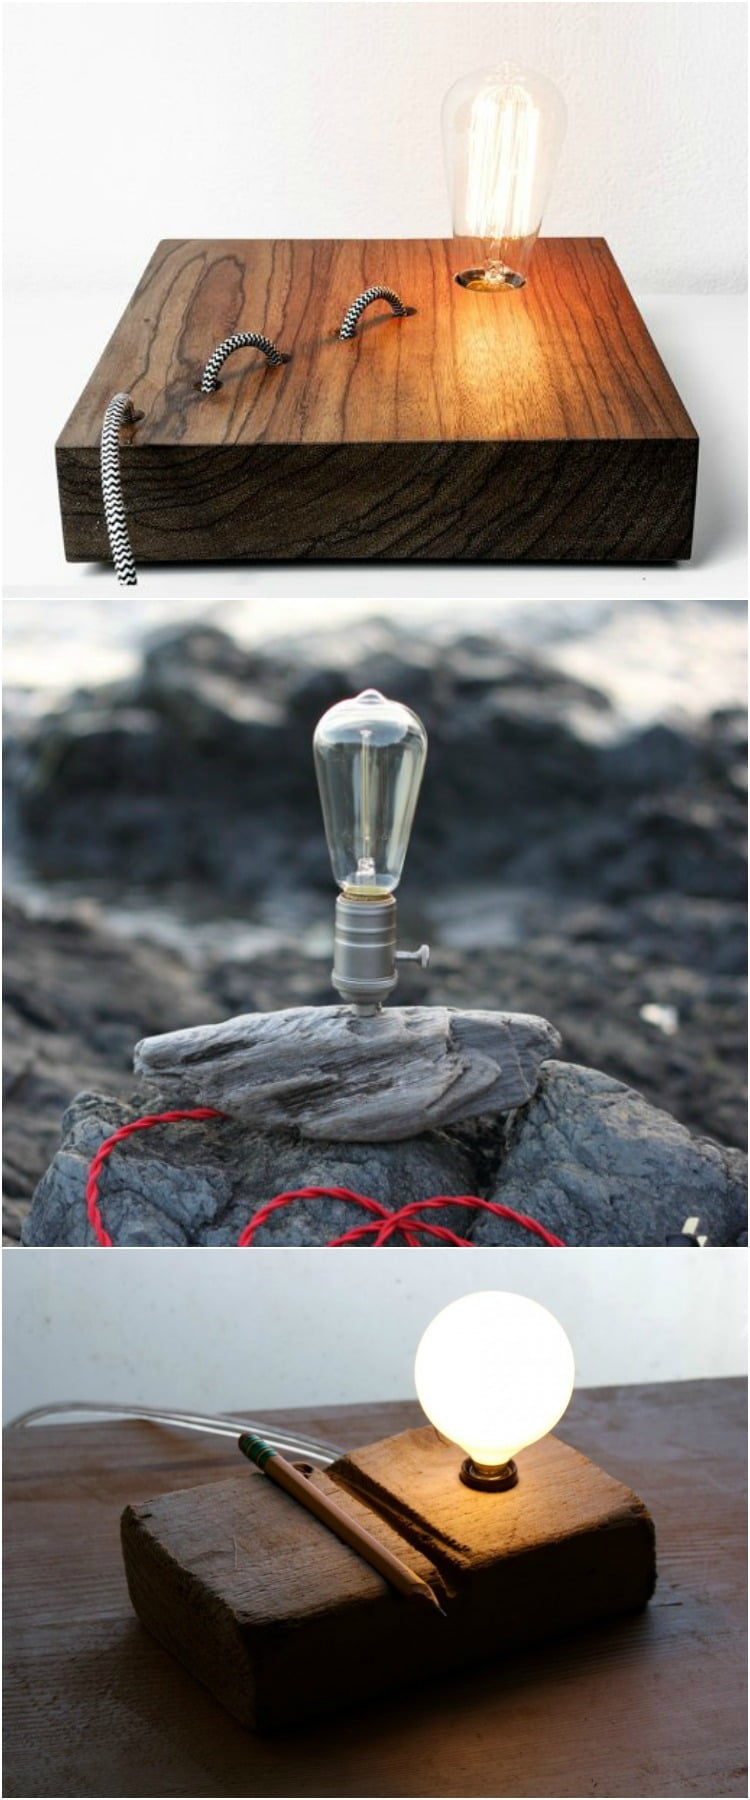 8 Best Decks Tarot Apokalypsis Images On Pinterest: 8 Best Handmade Wooden Desk Lamps